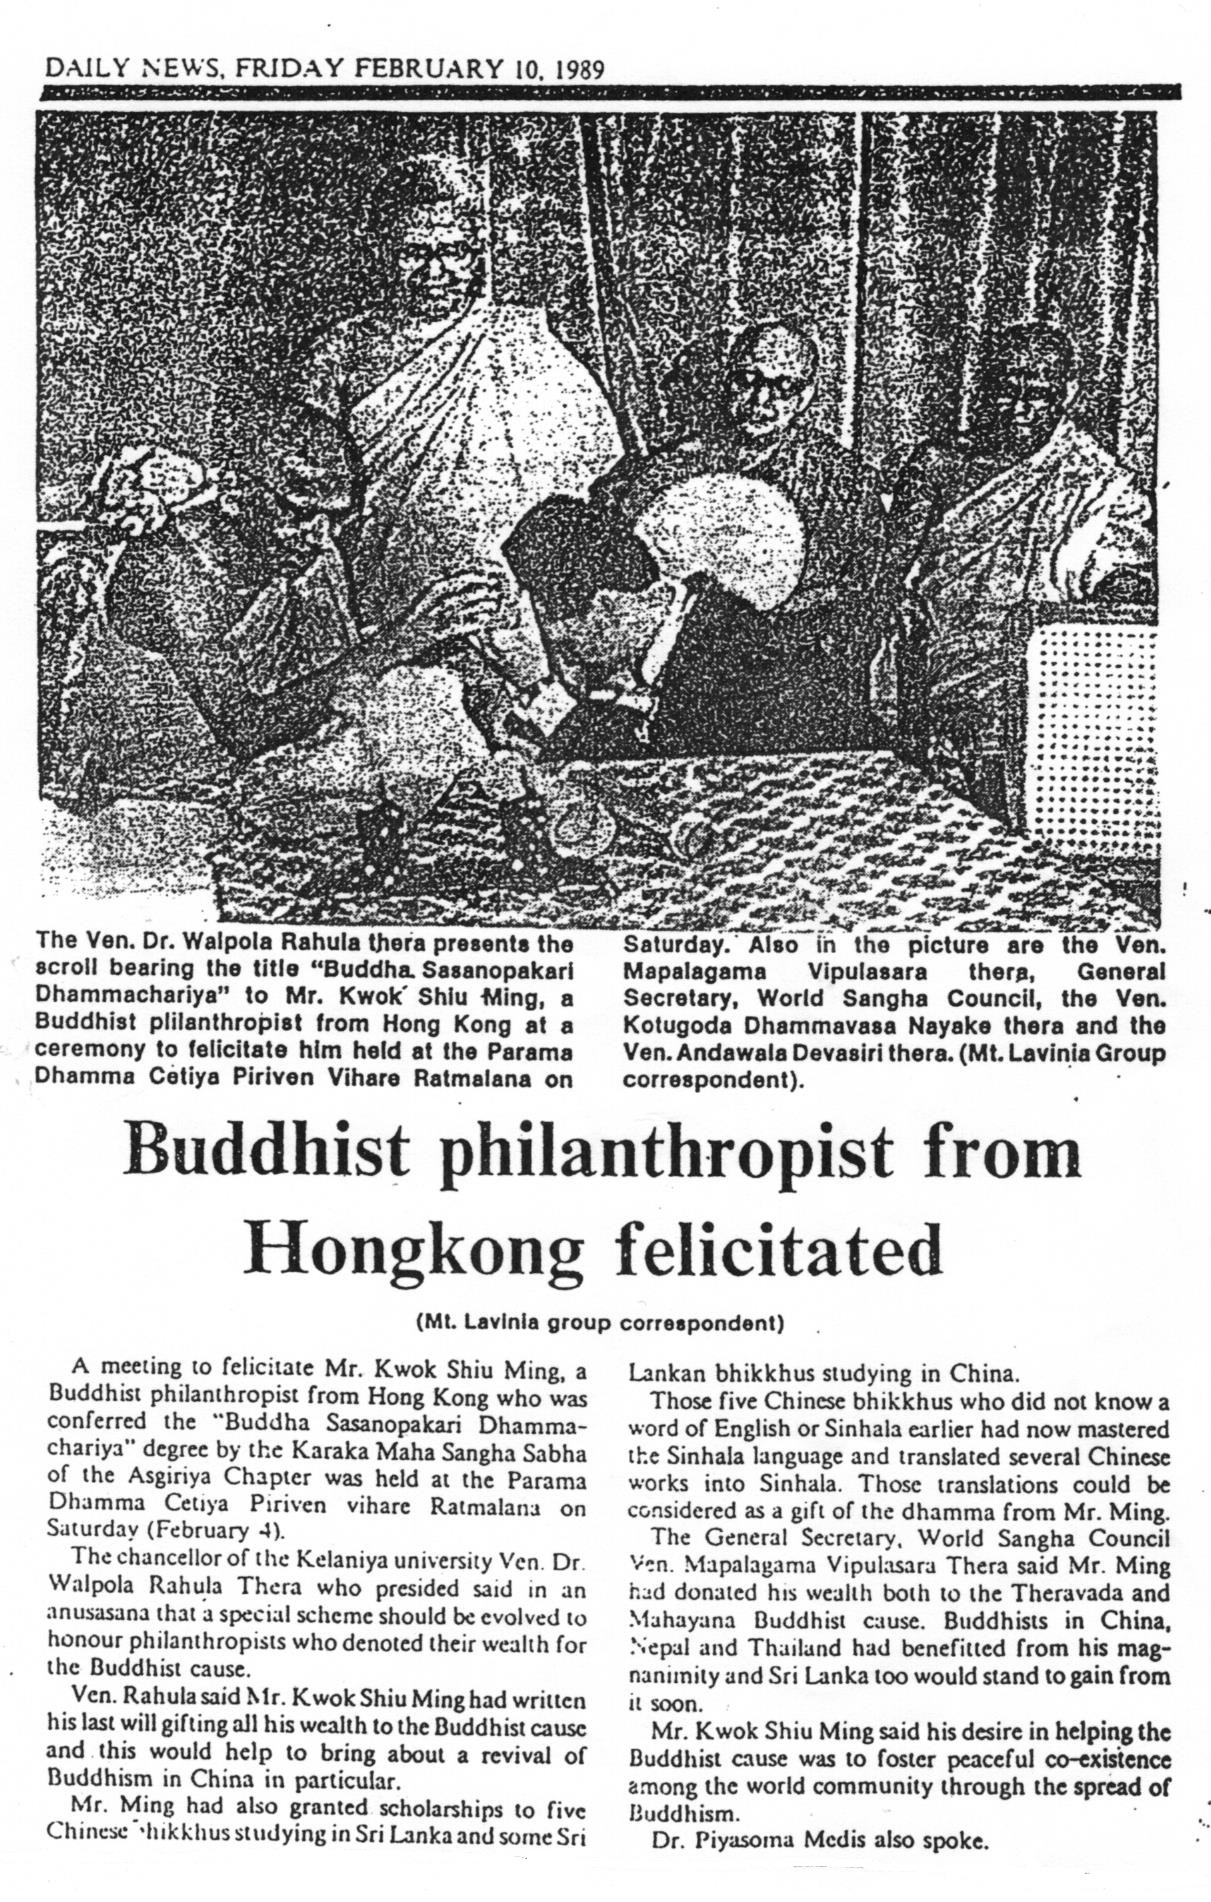 Buddhist philanthropist from HongKong felicitated.jpg